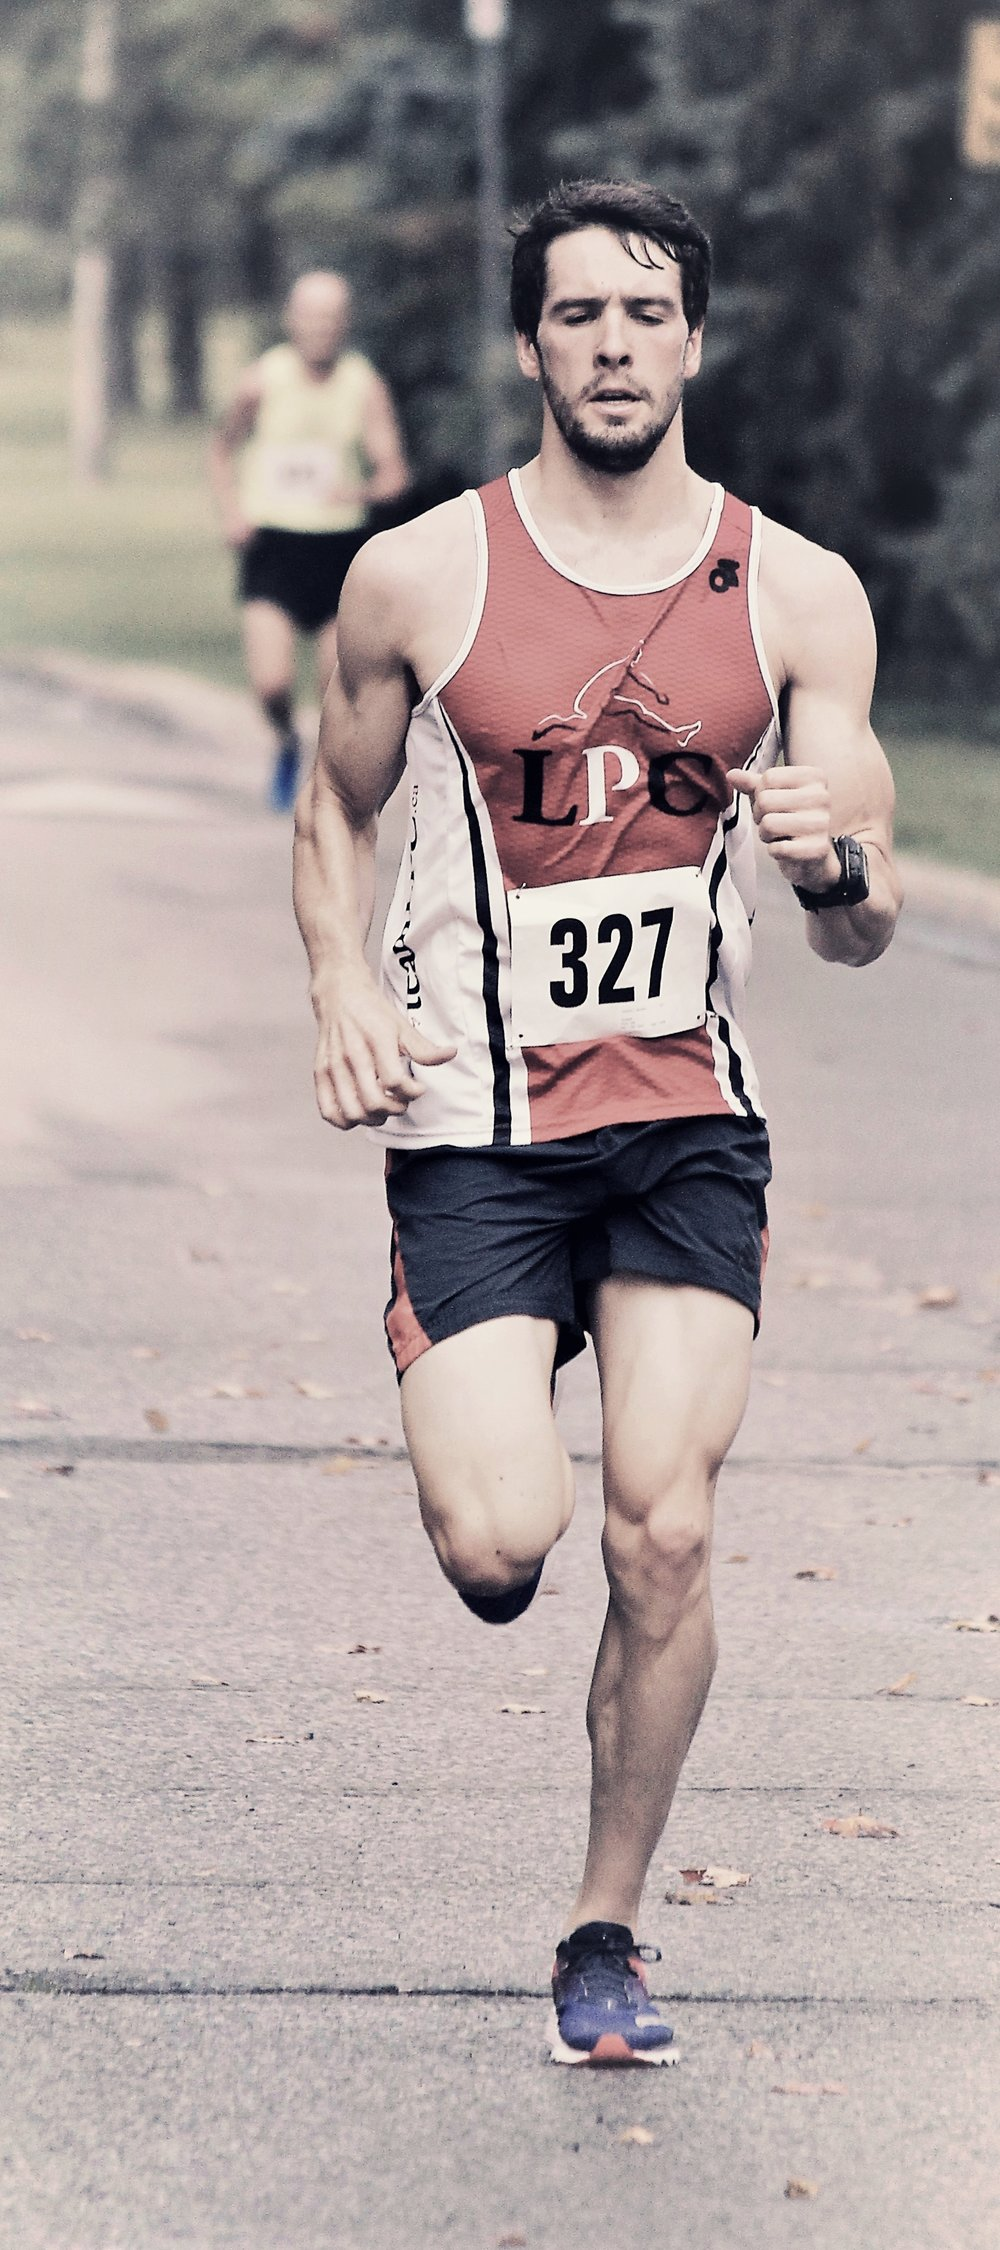 The Guelph Thanksgiving day 10km, Photo by Maureen Hay.